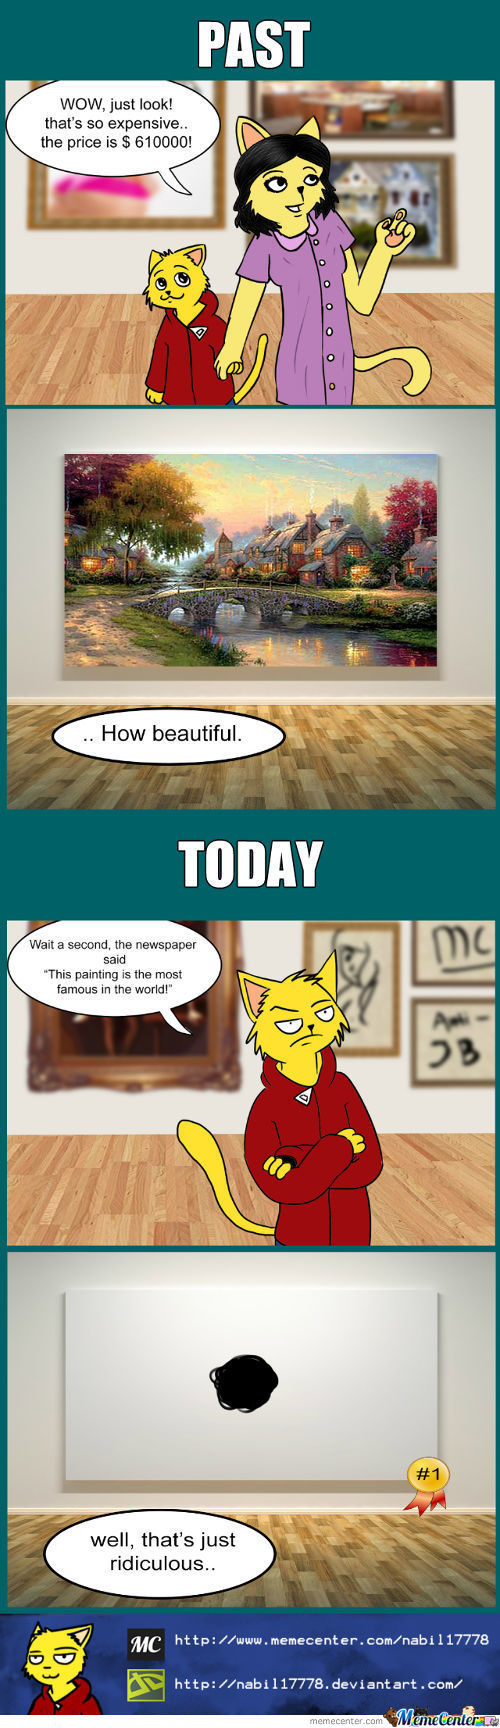 Paintings: Past Vs Today